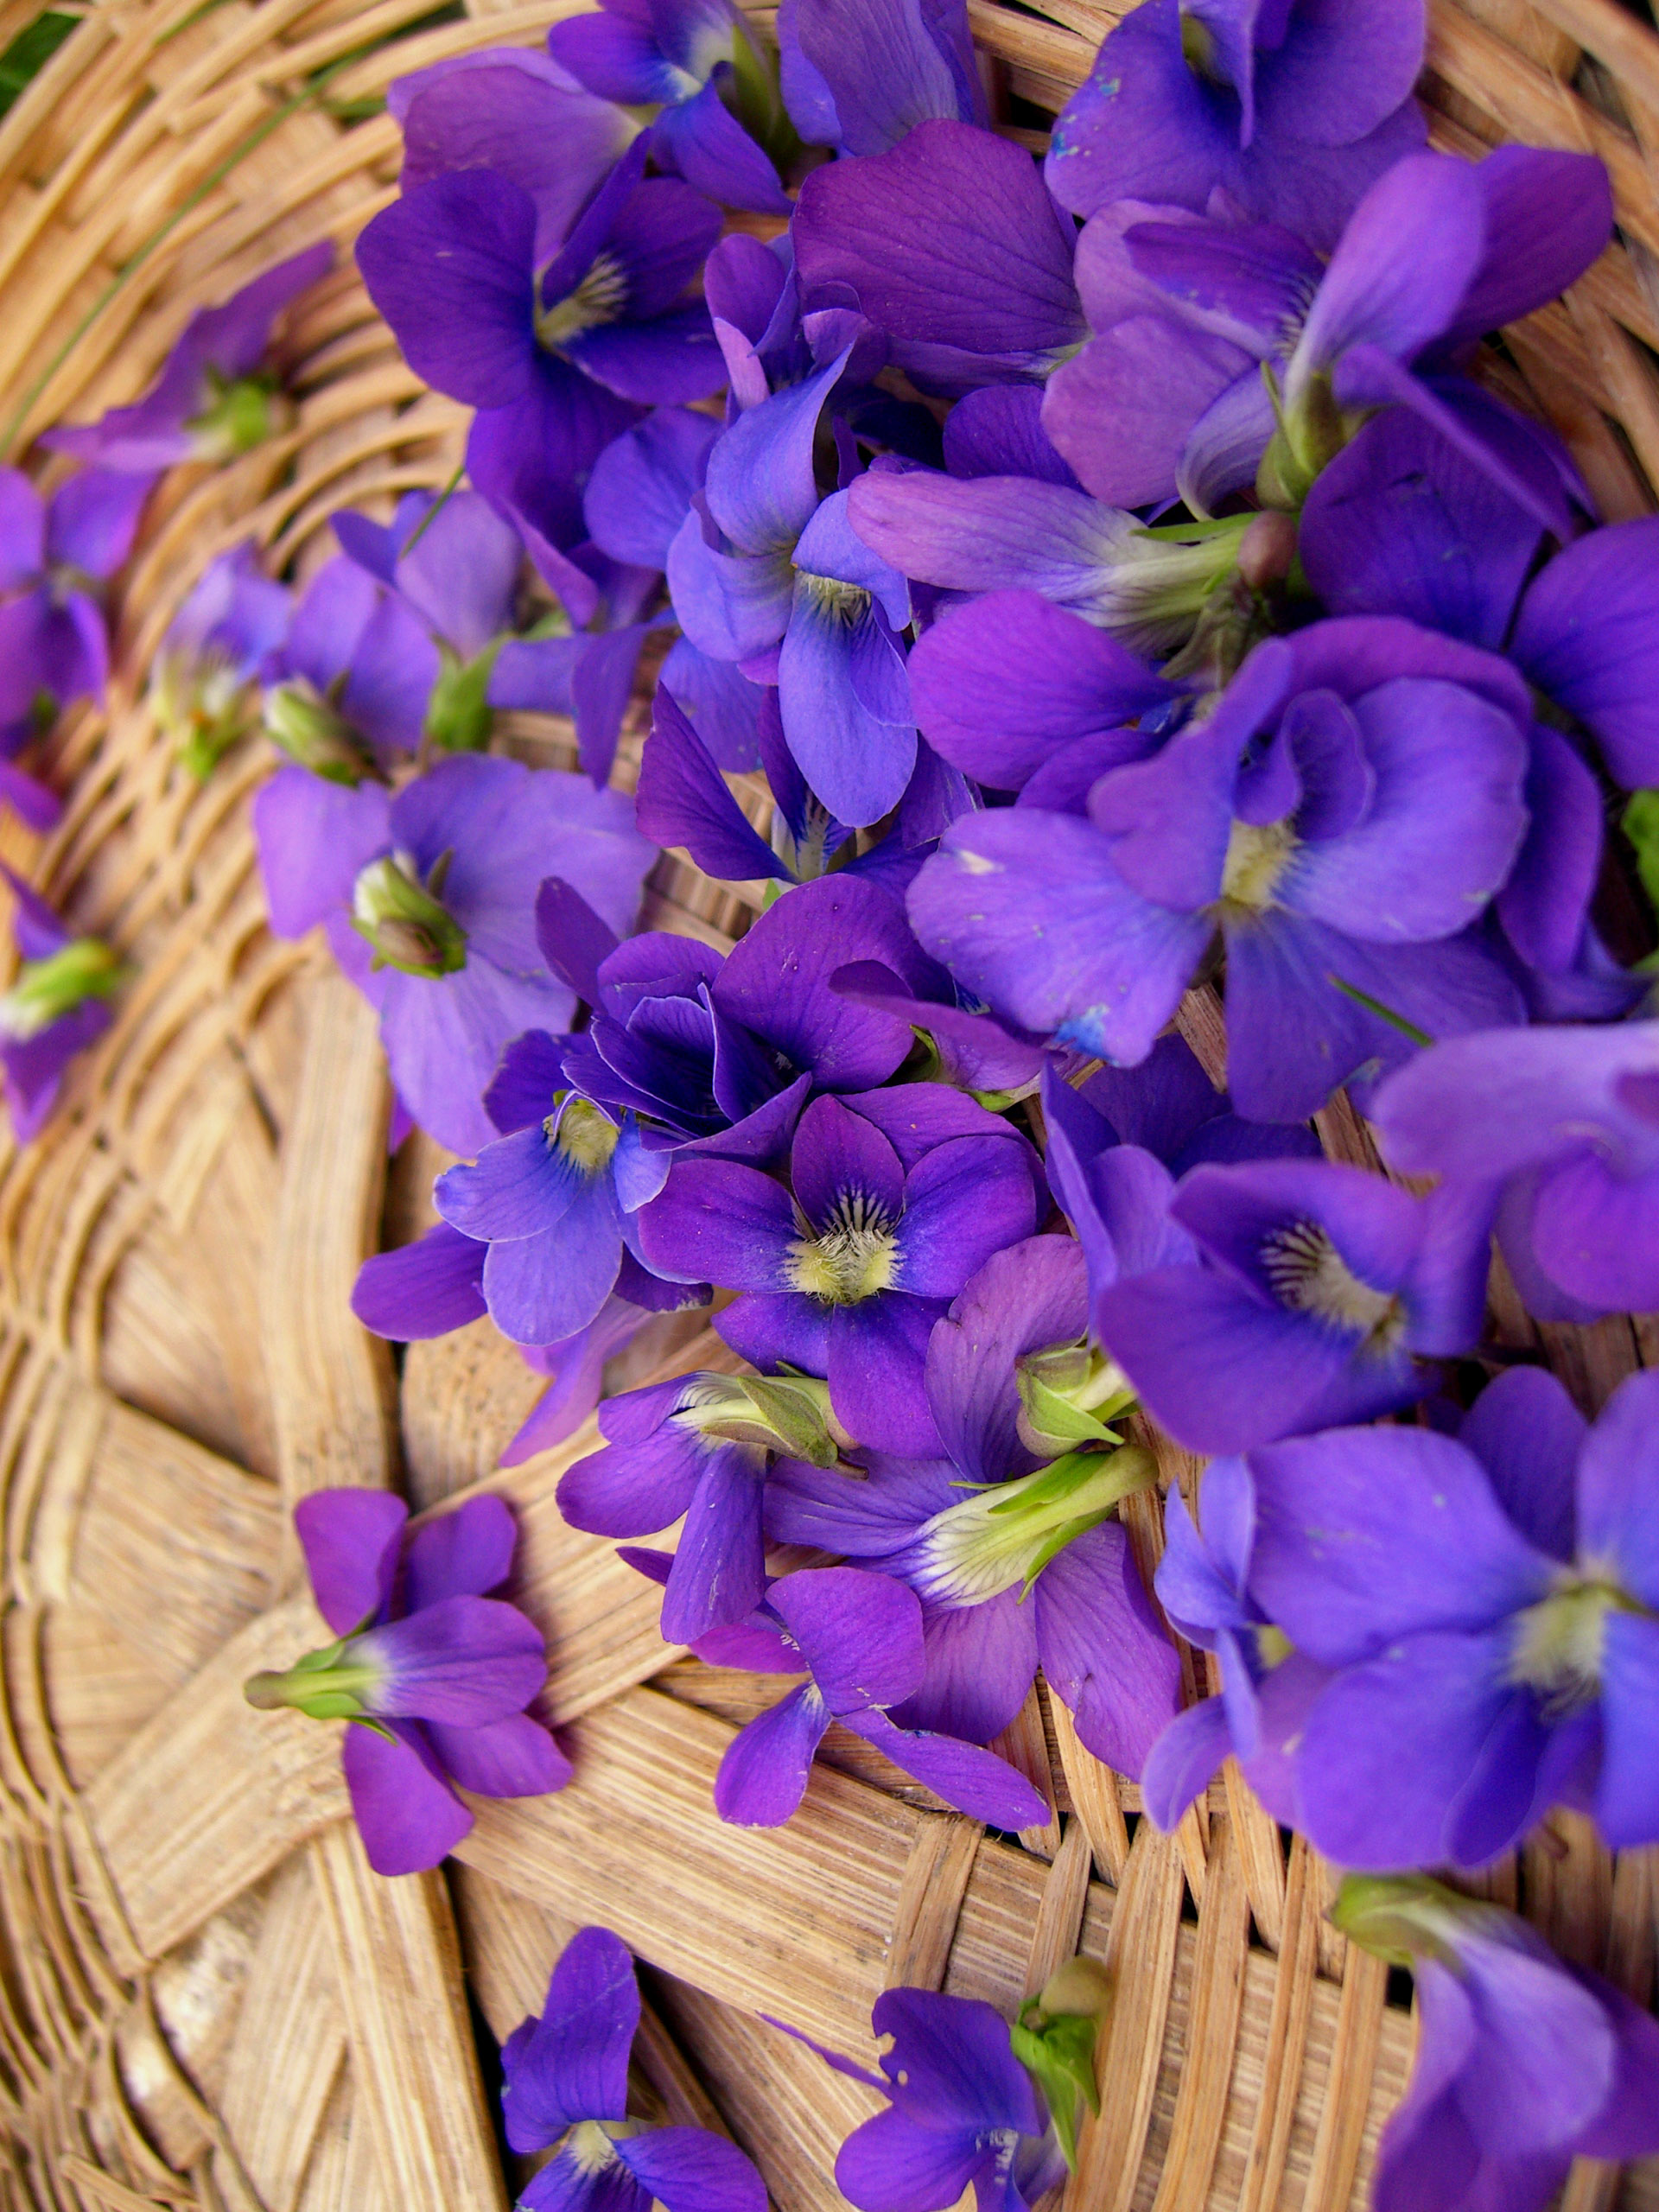 Violets at home - embodied the tenderness of spring